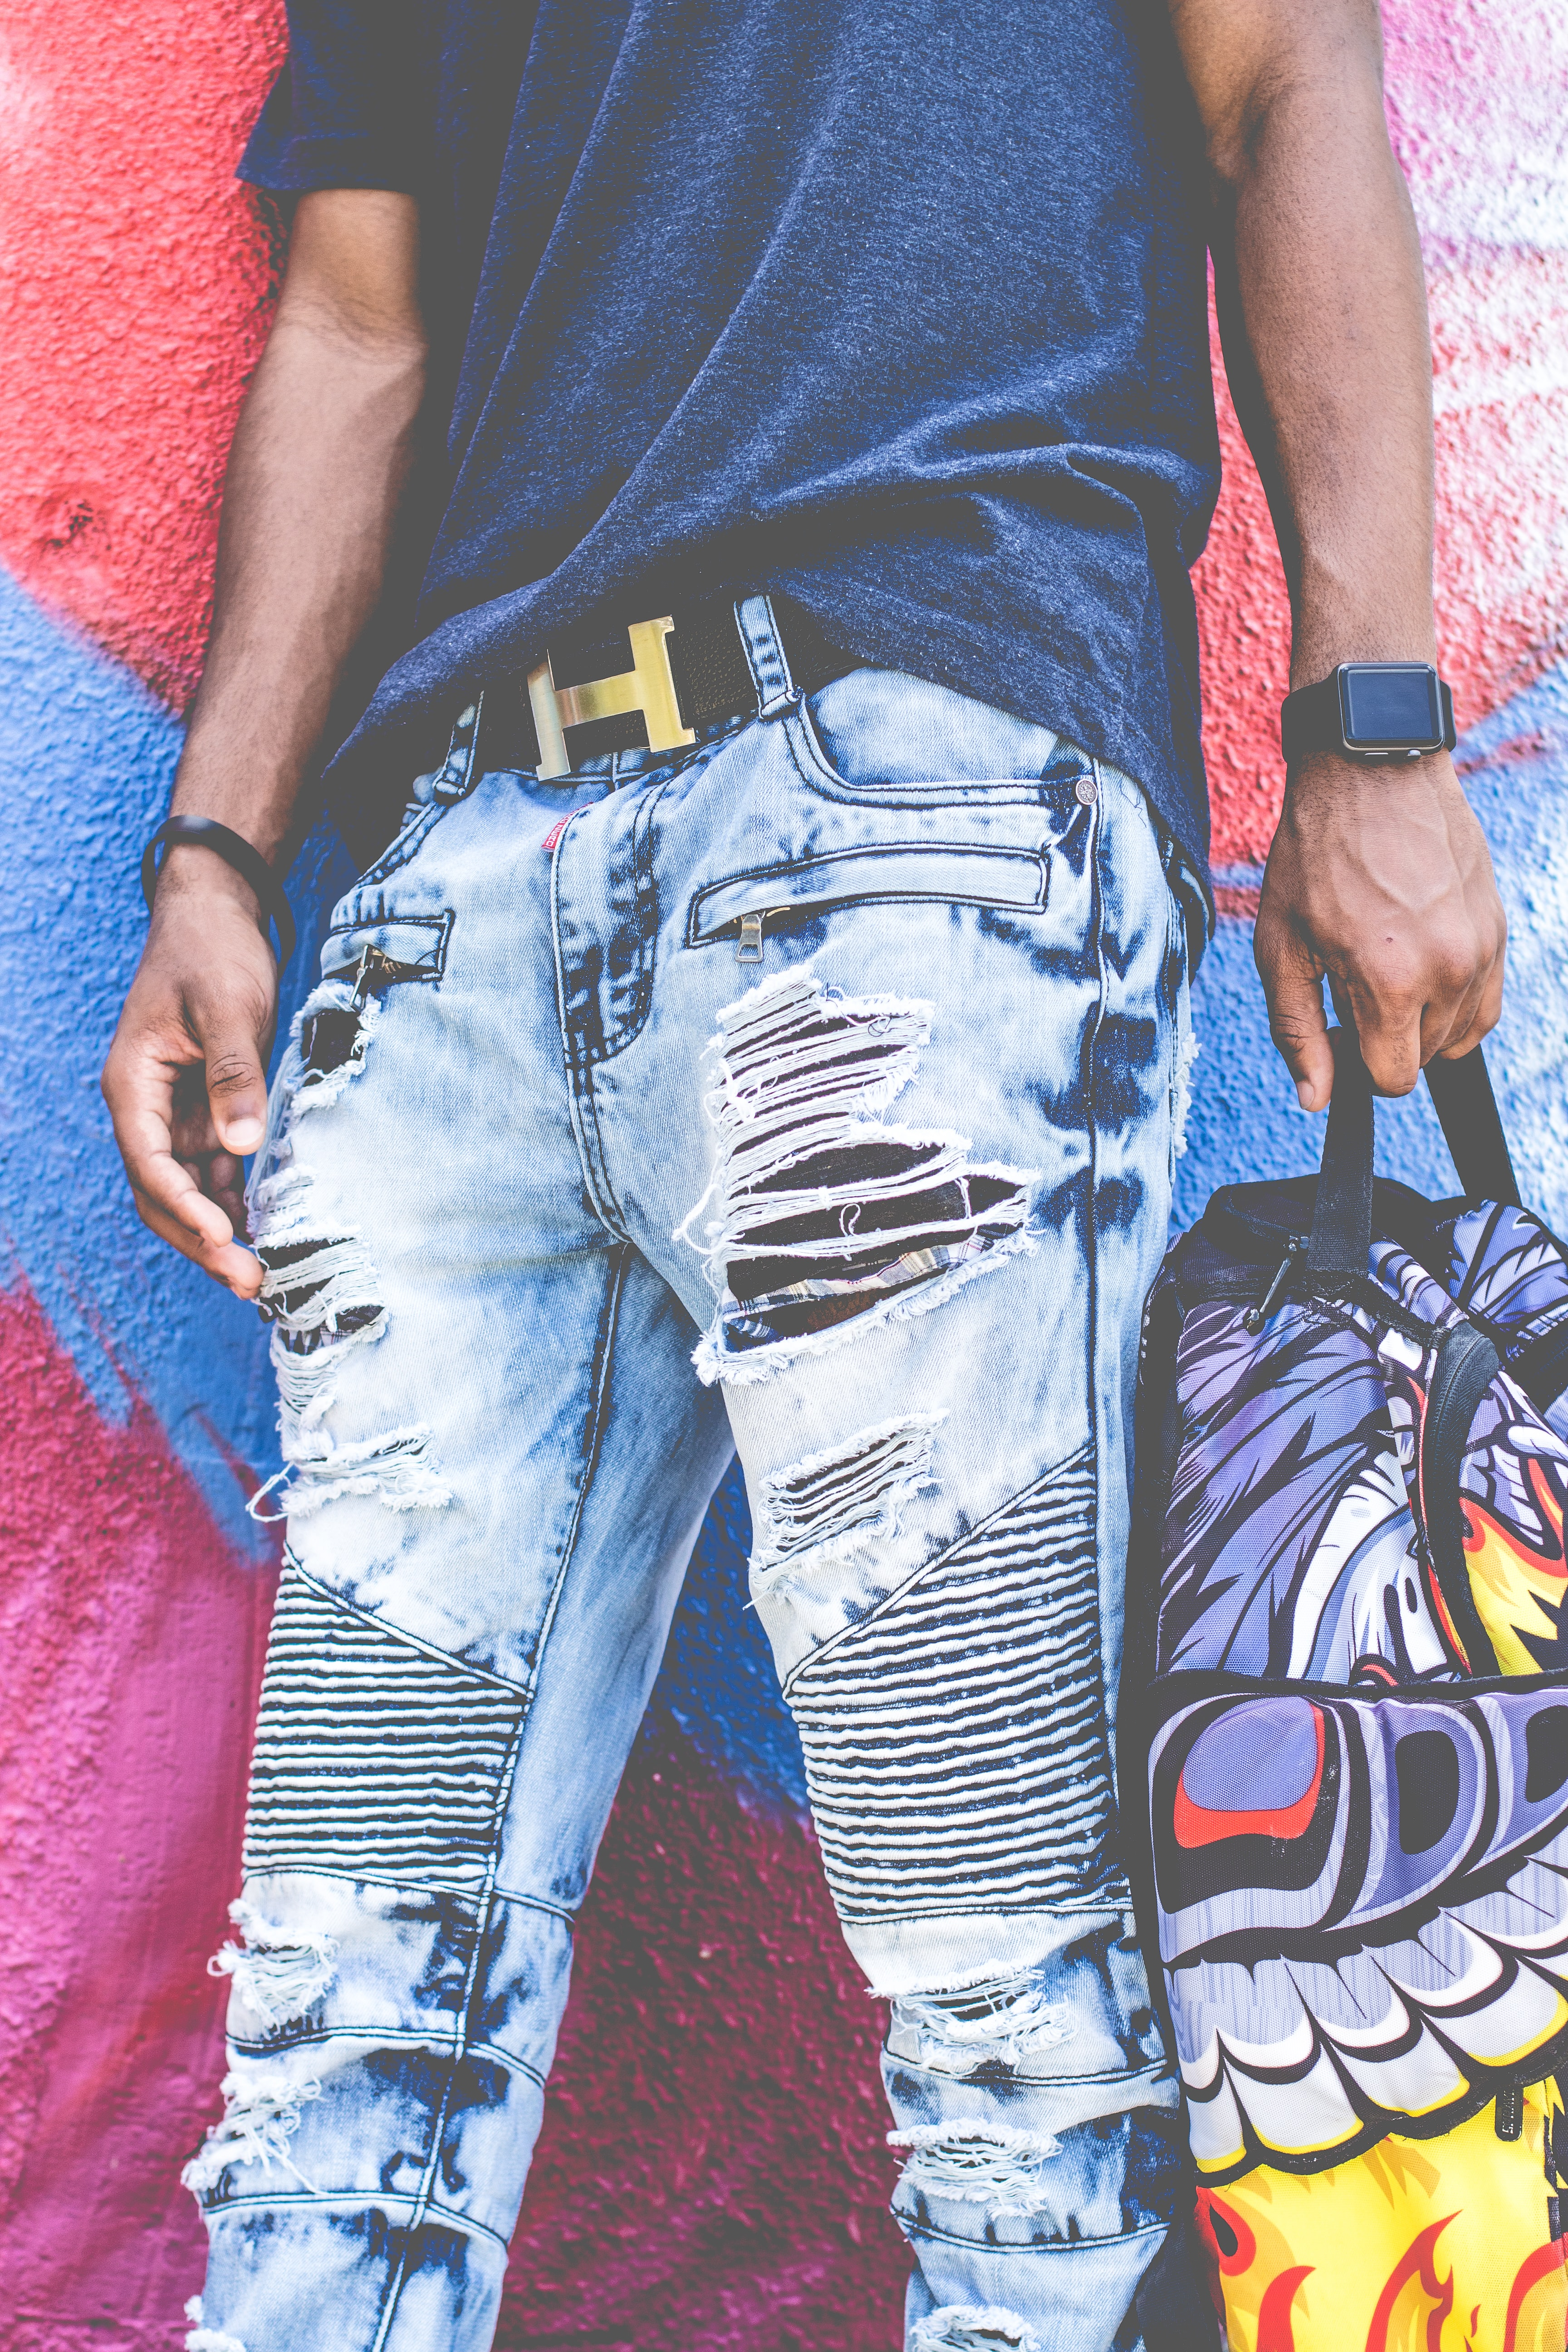 Low shot of person wearing ripped jeans and holding a backpack near a mural